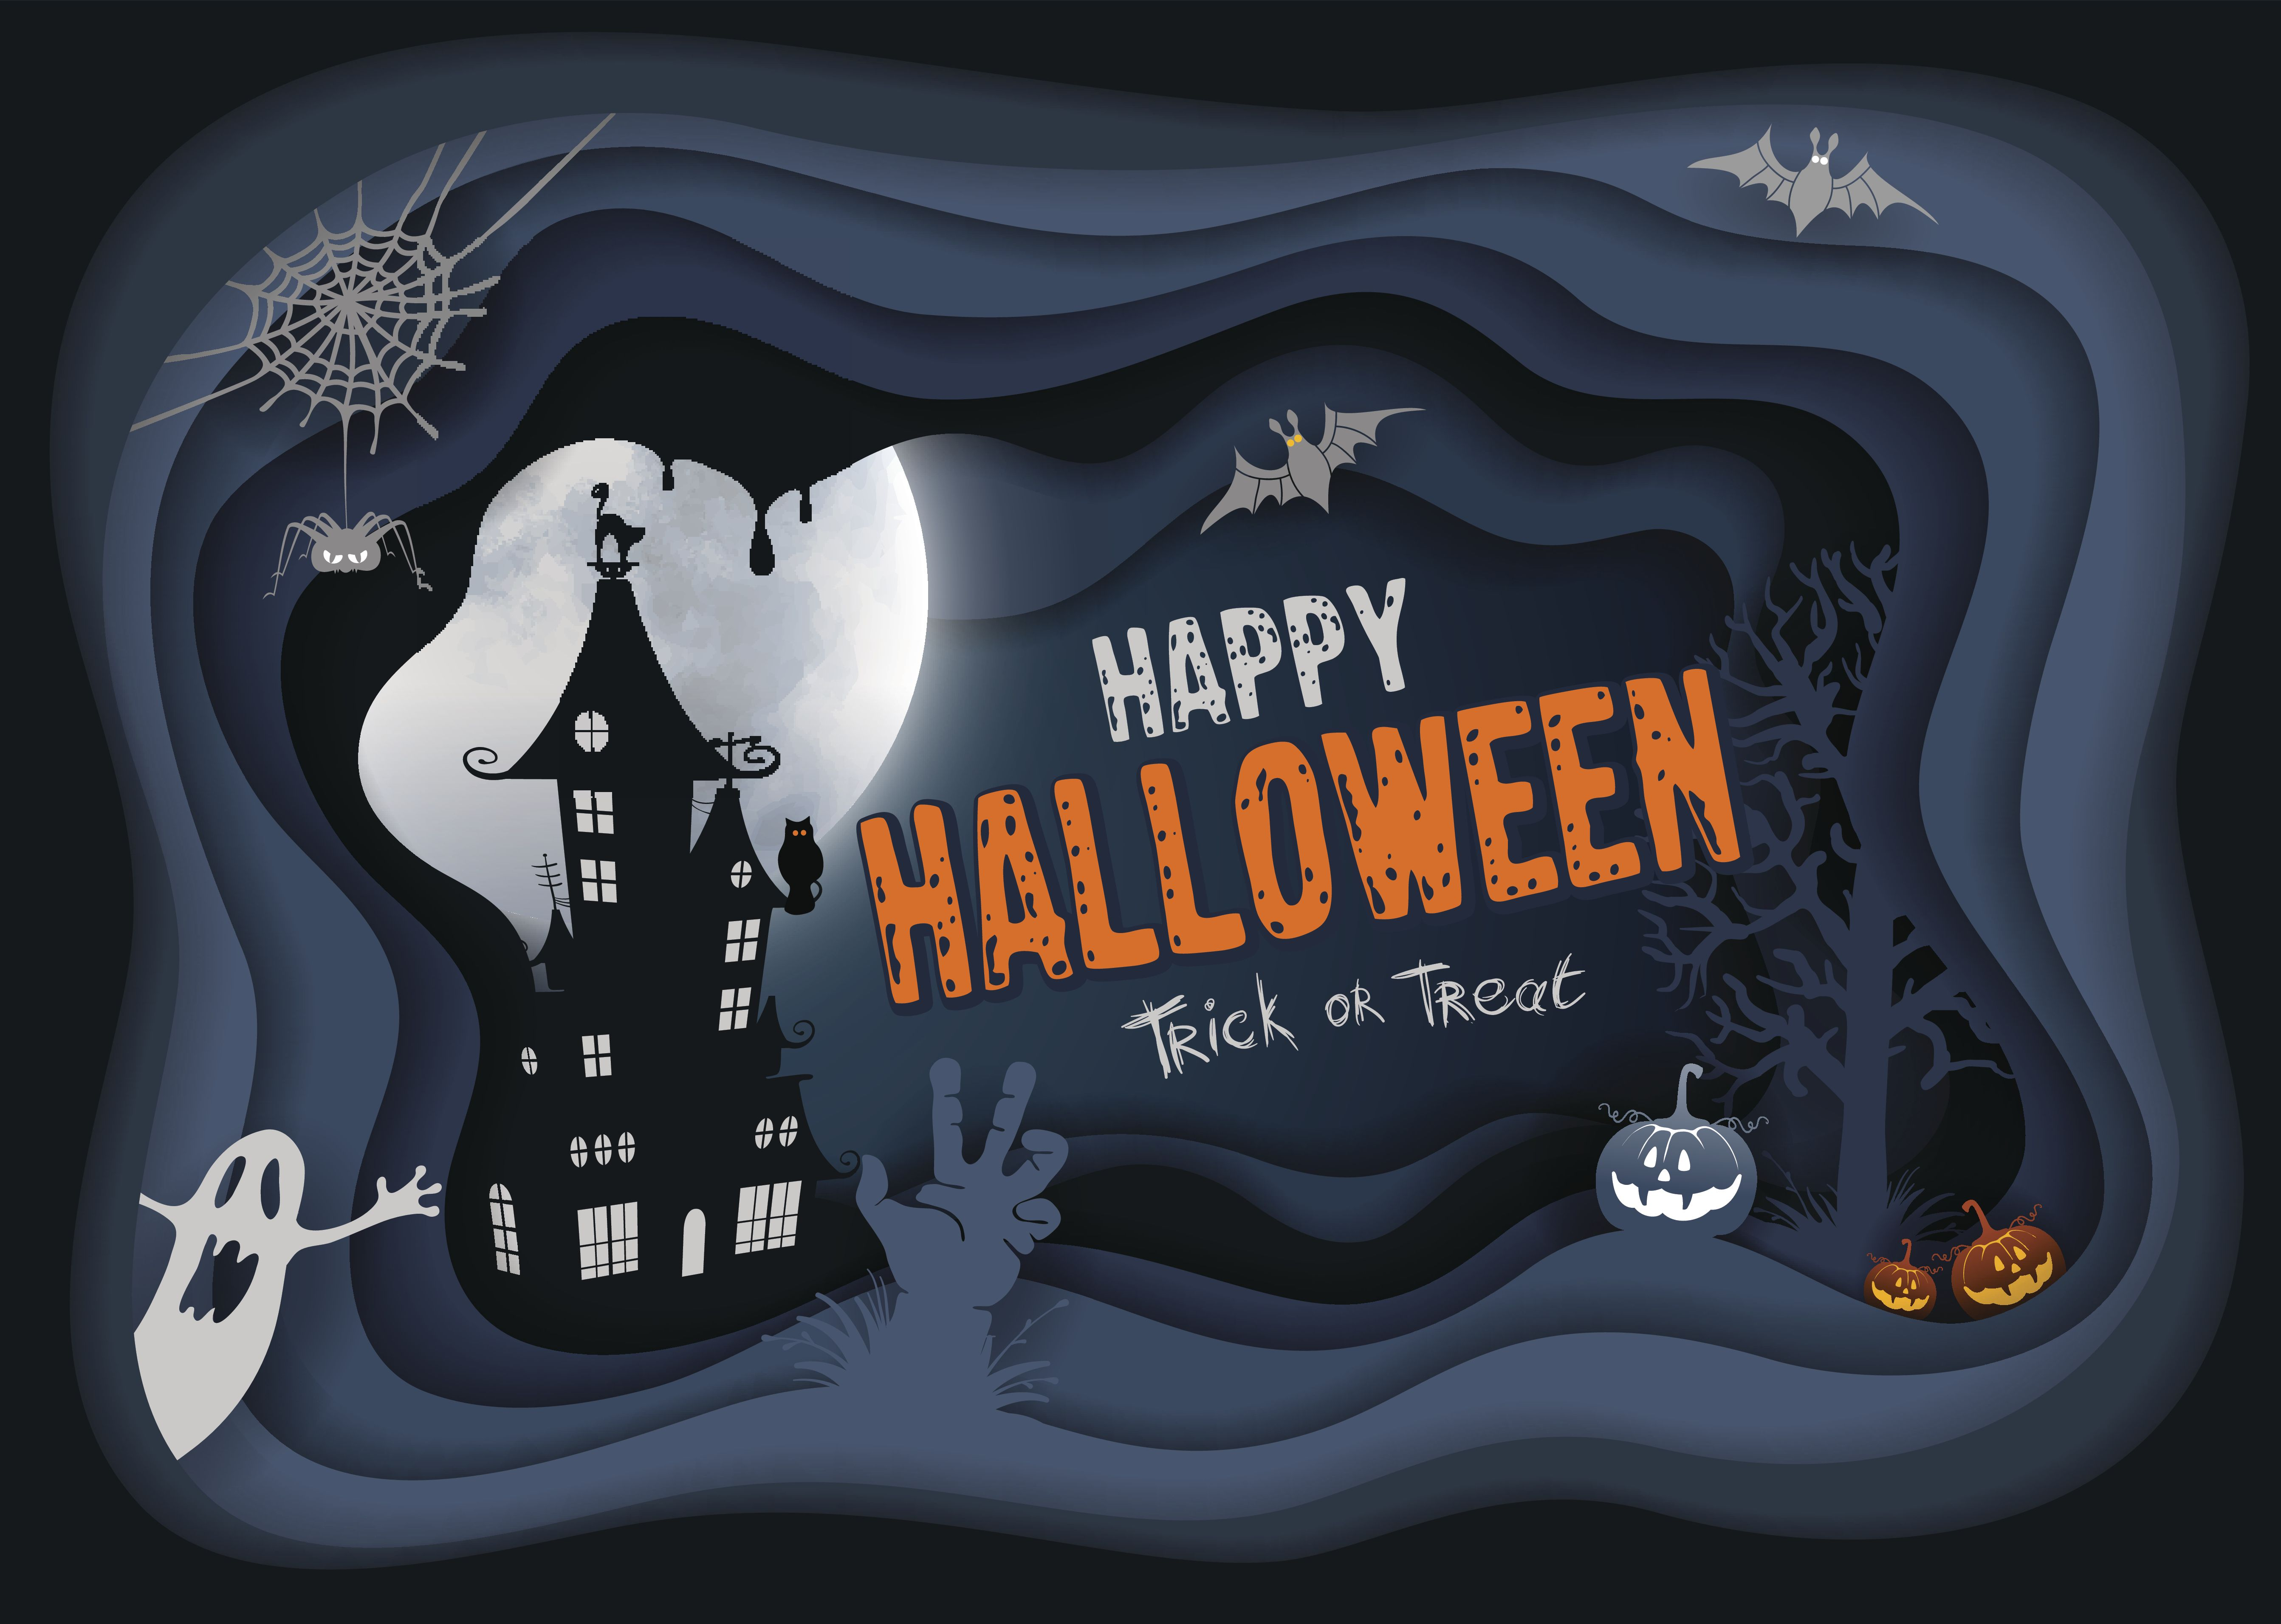 Halloween is always a fun day of the year, so we hope you